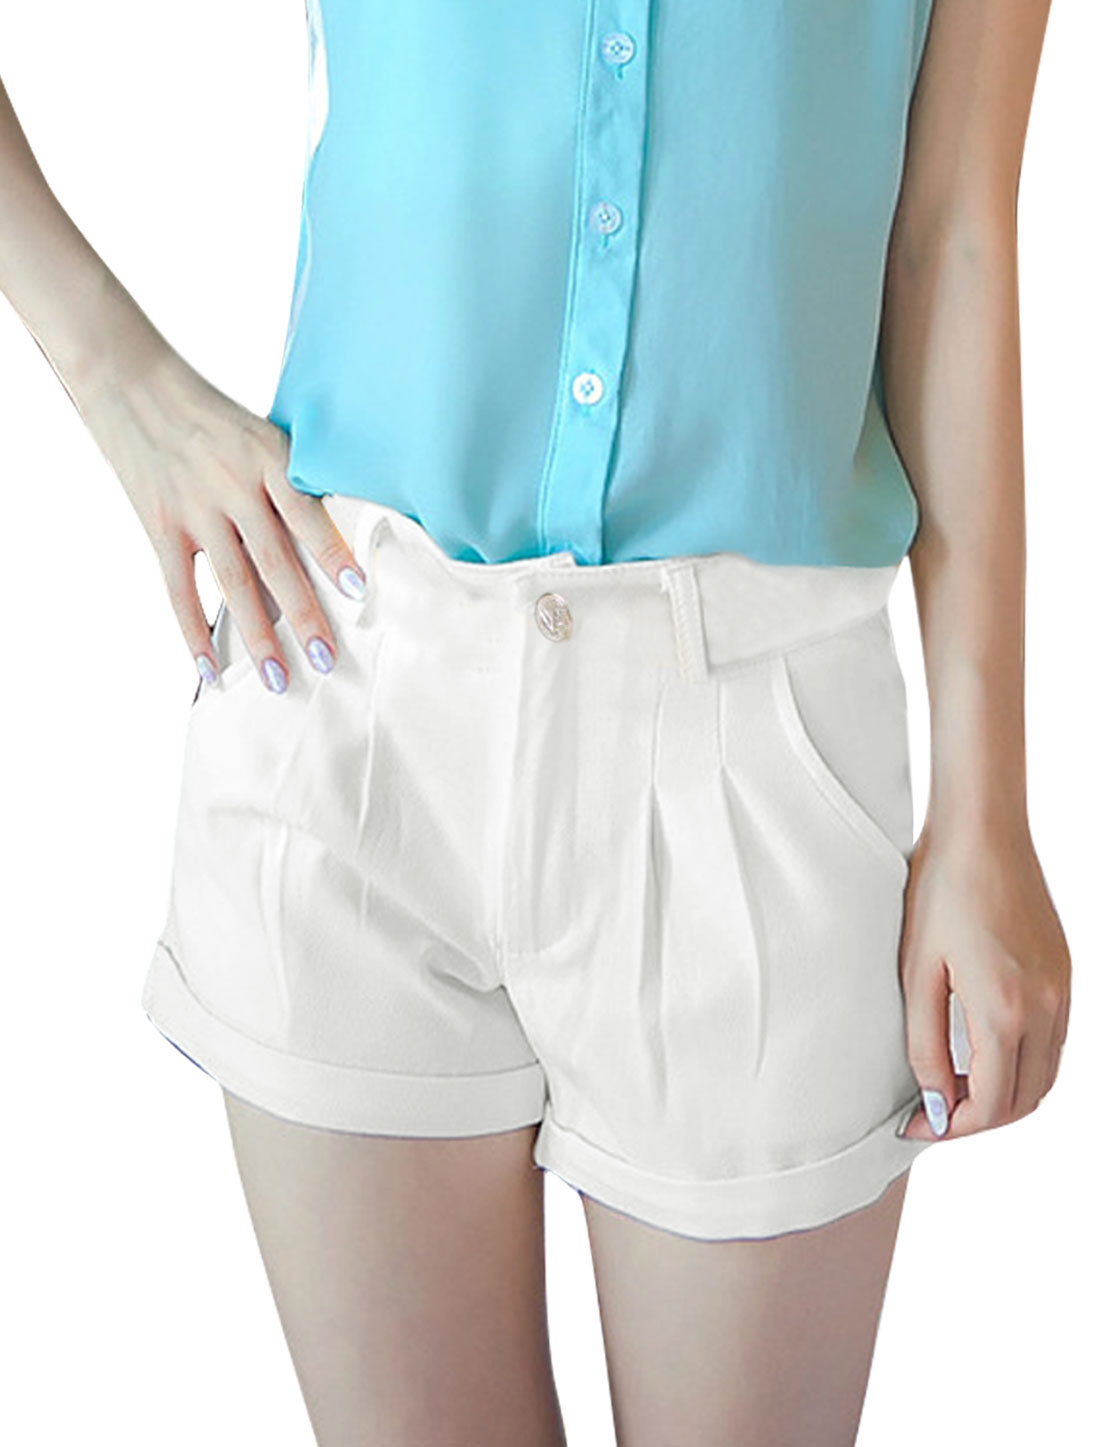 Women Zip Up Waistband Loop Pockets Button Decor Shorts White S